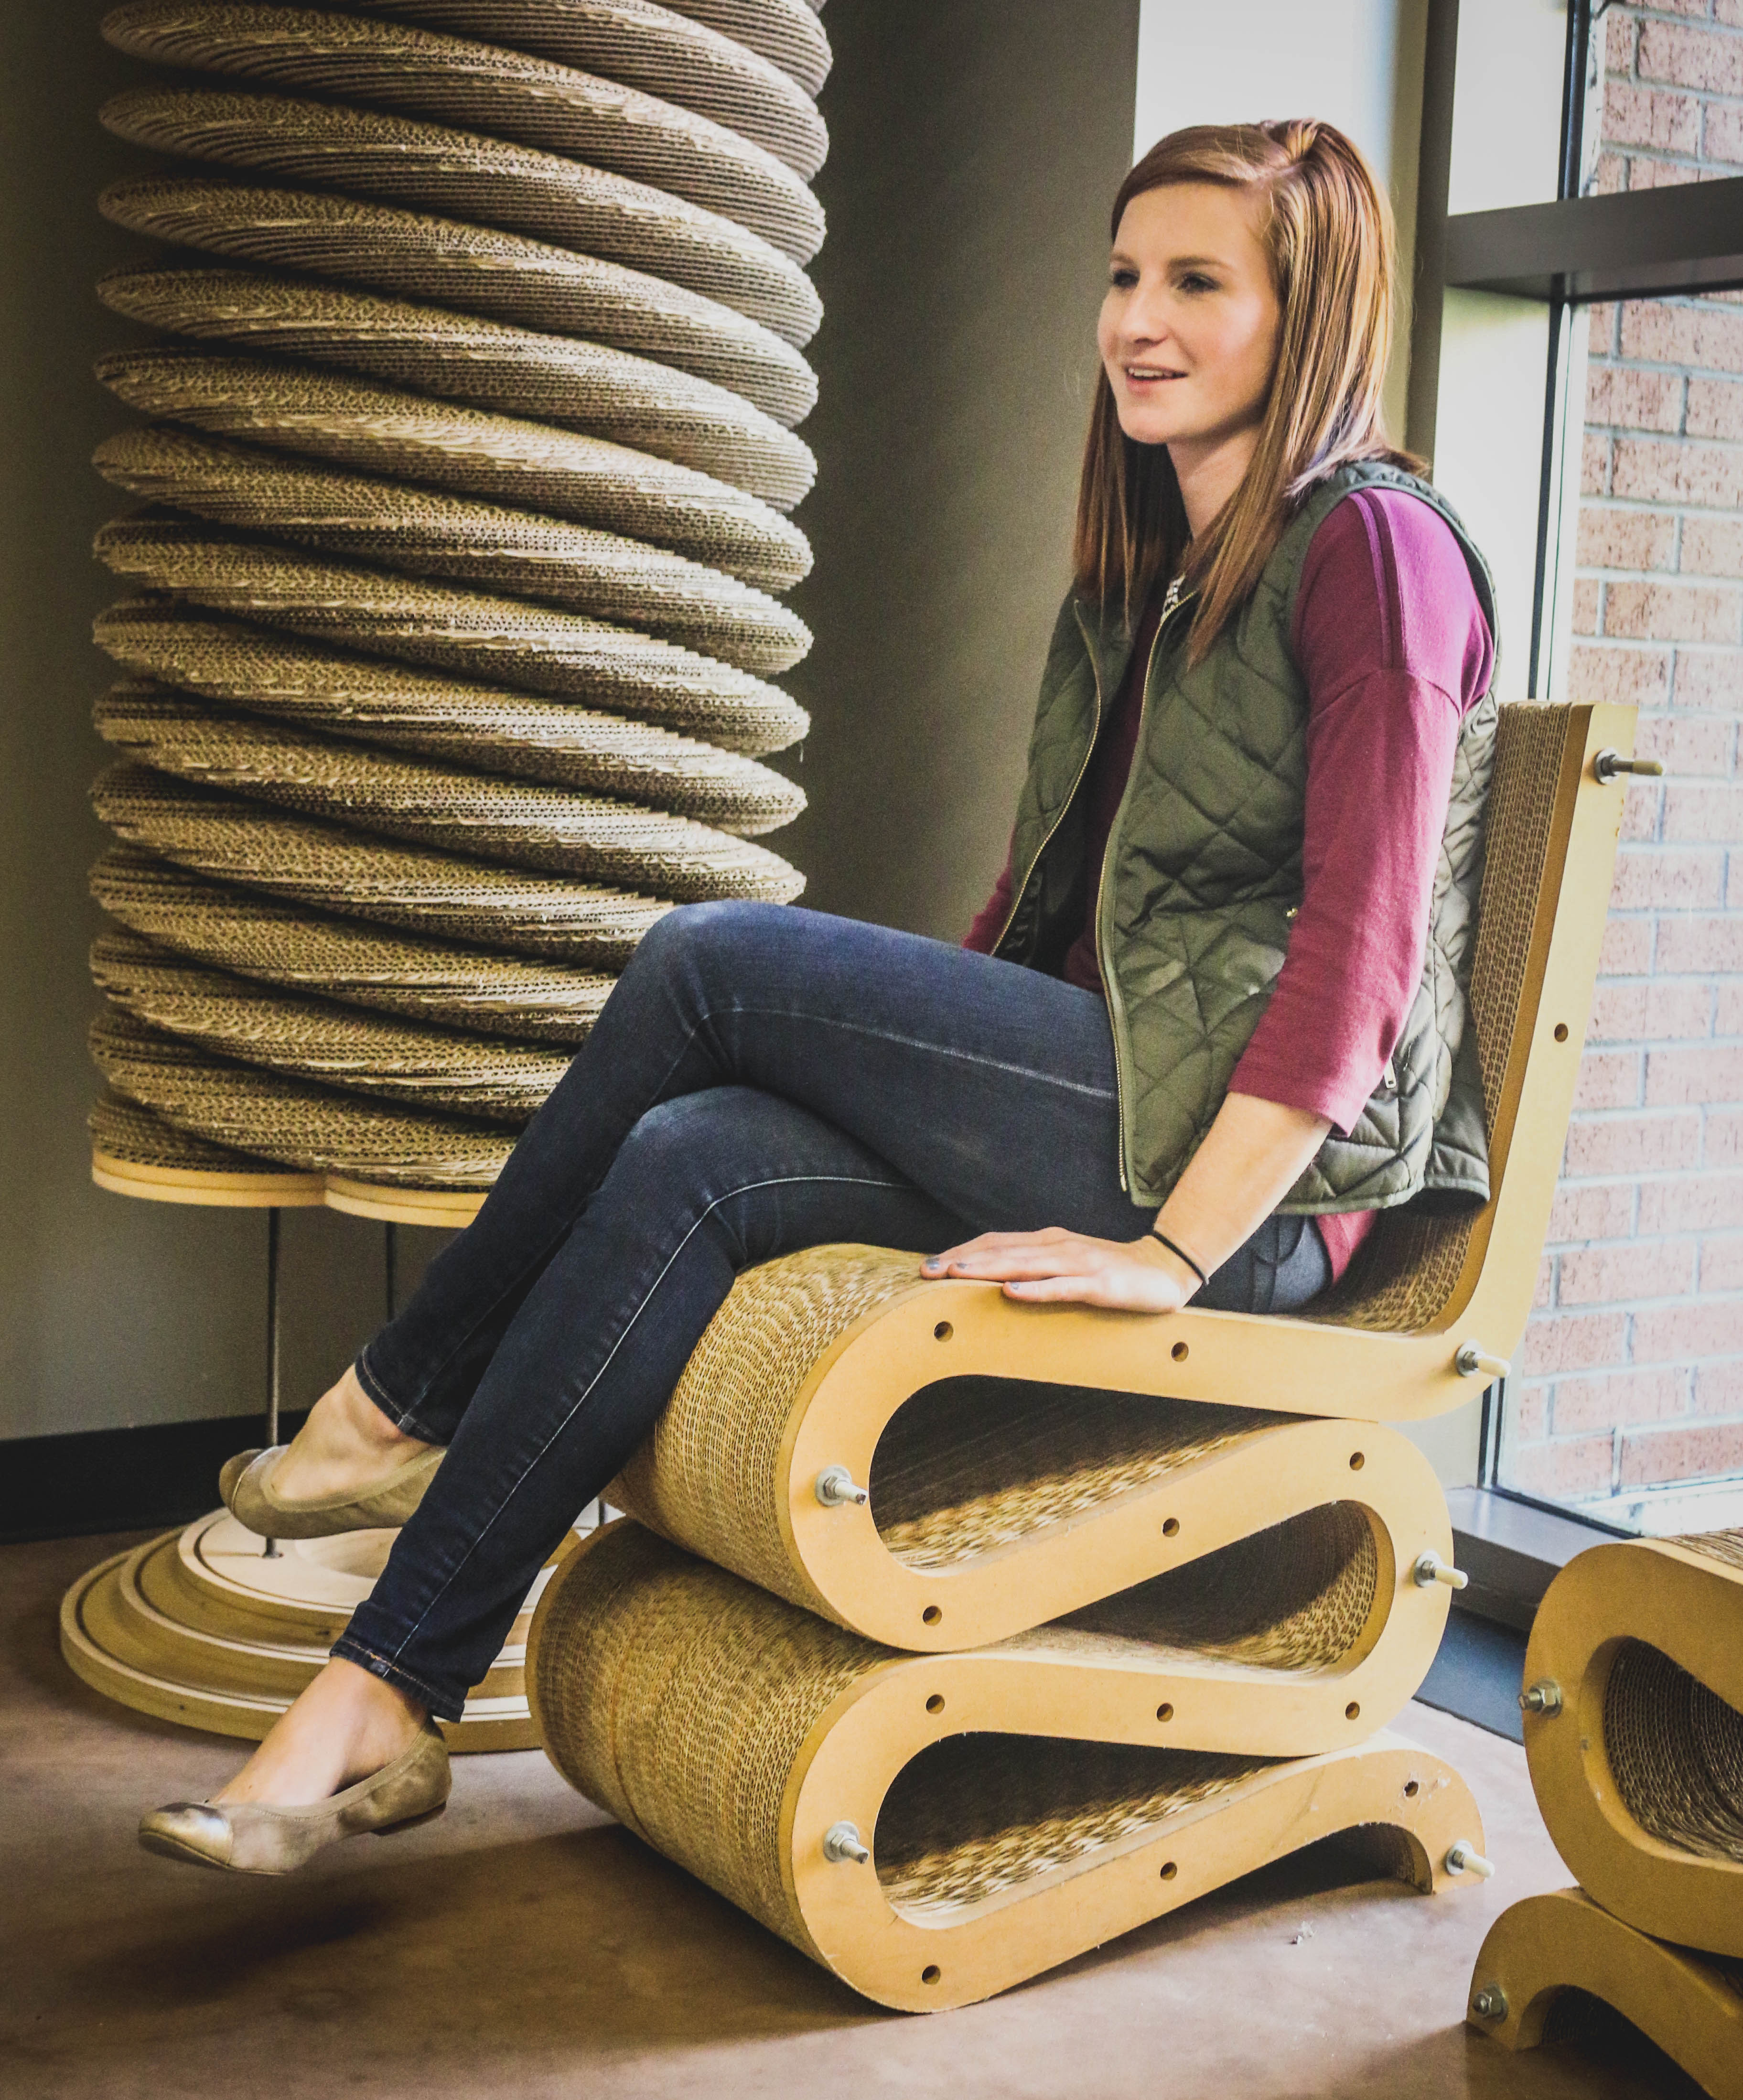 Erin Hongsermeier, senior packaging science major, uses a chair made out of layers of corrugated board.